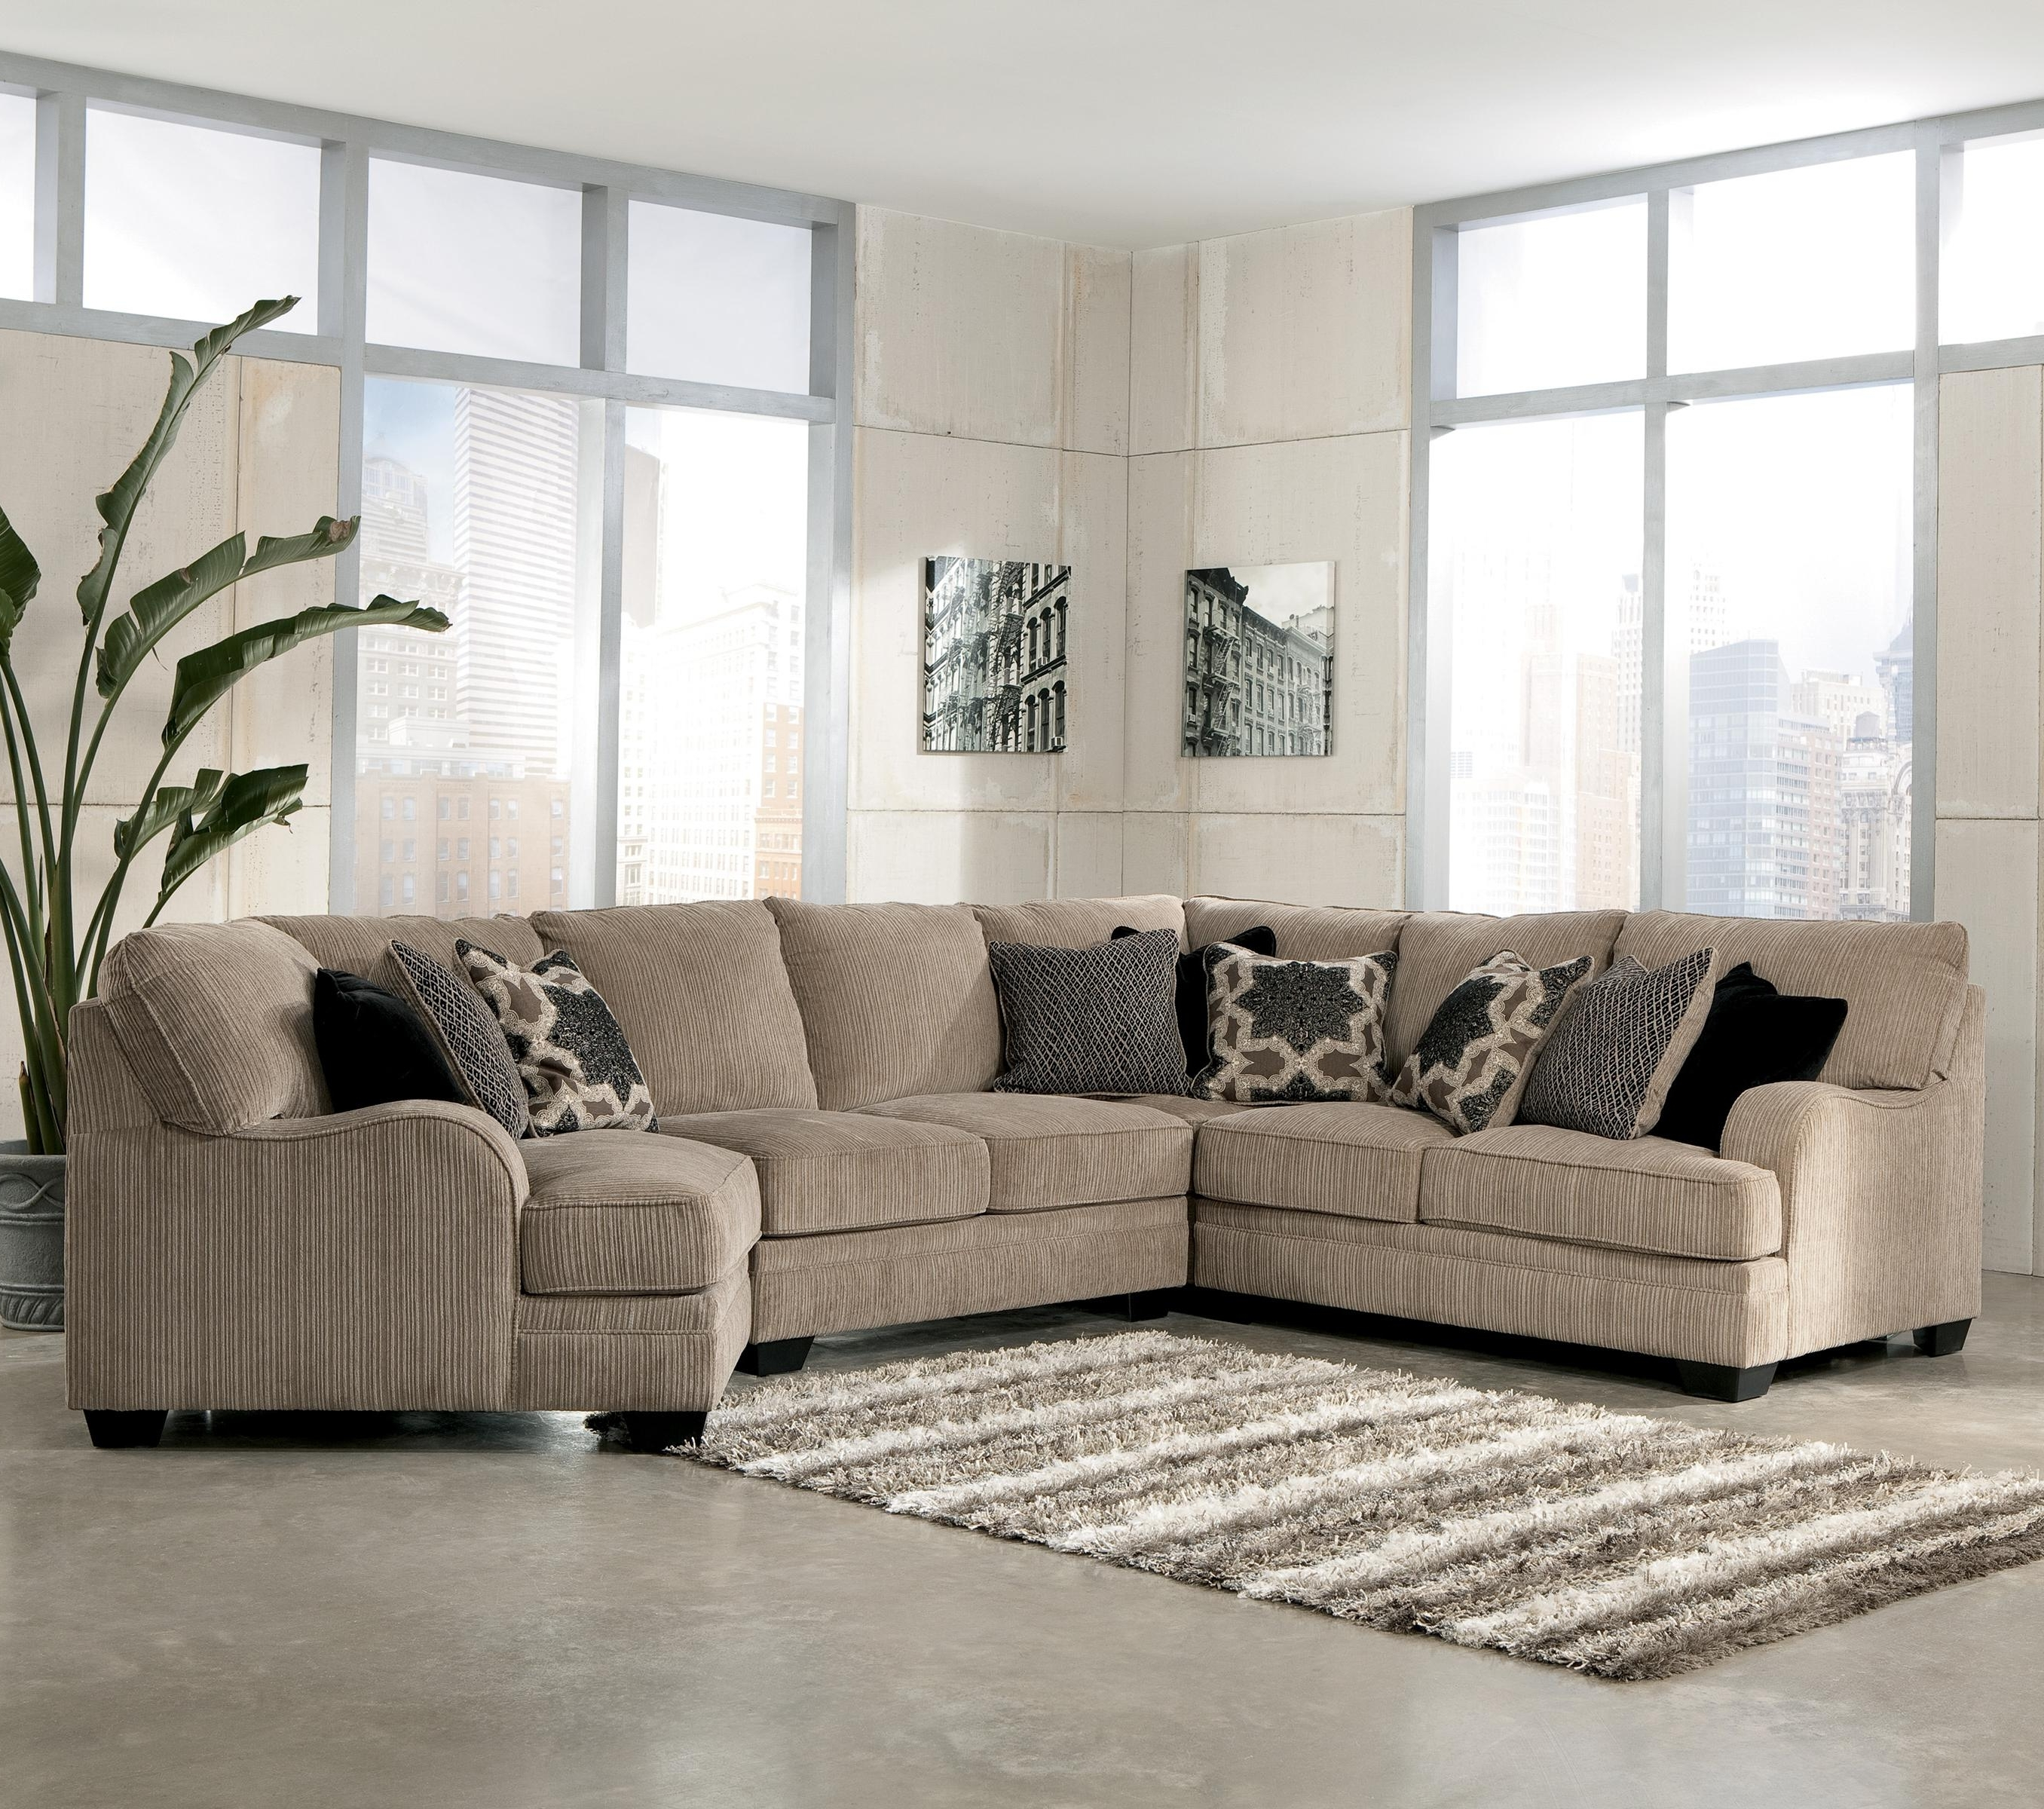 Most Current Sectional Sofas With Cuddler Within Signature Designashley Katisha – Platinum 4 Piece Sectional (View 16 of 20)